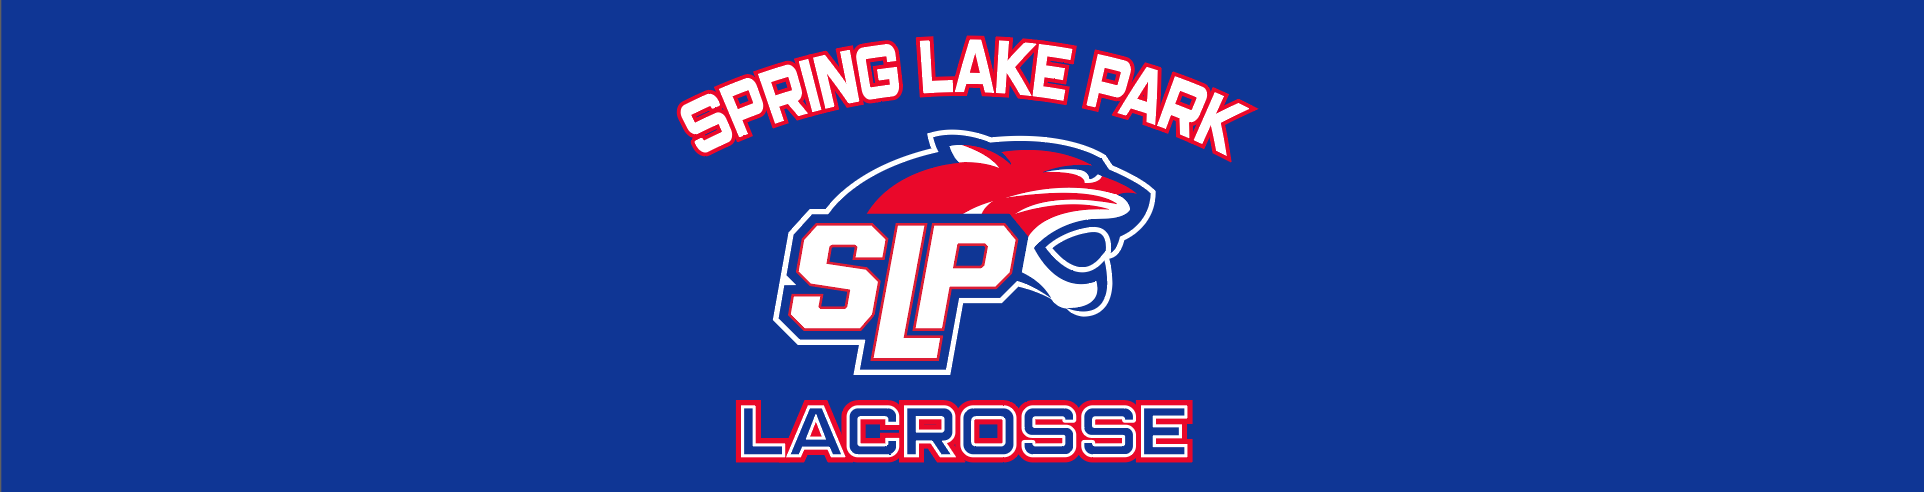 Spring Lake Park Lacrosse Holiday 2020